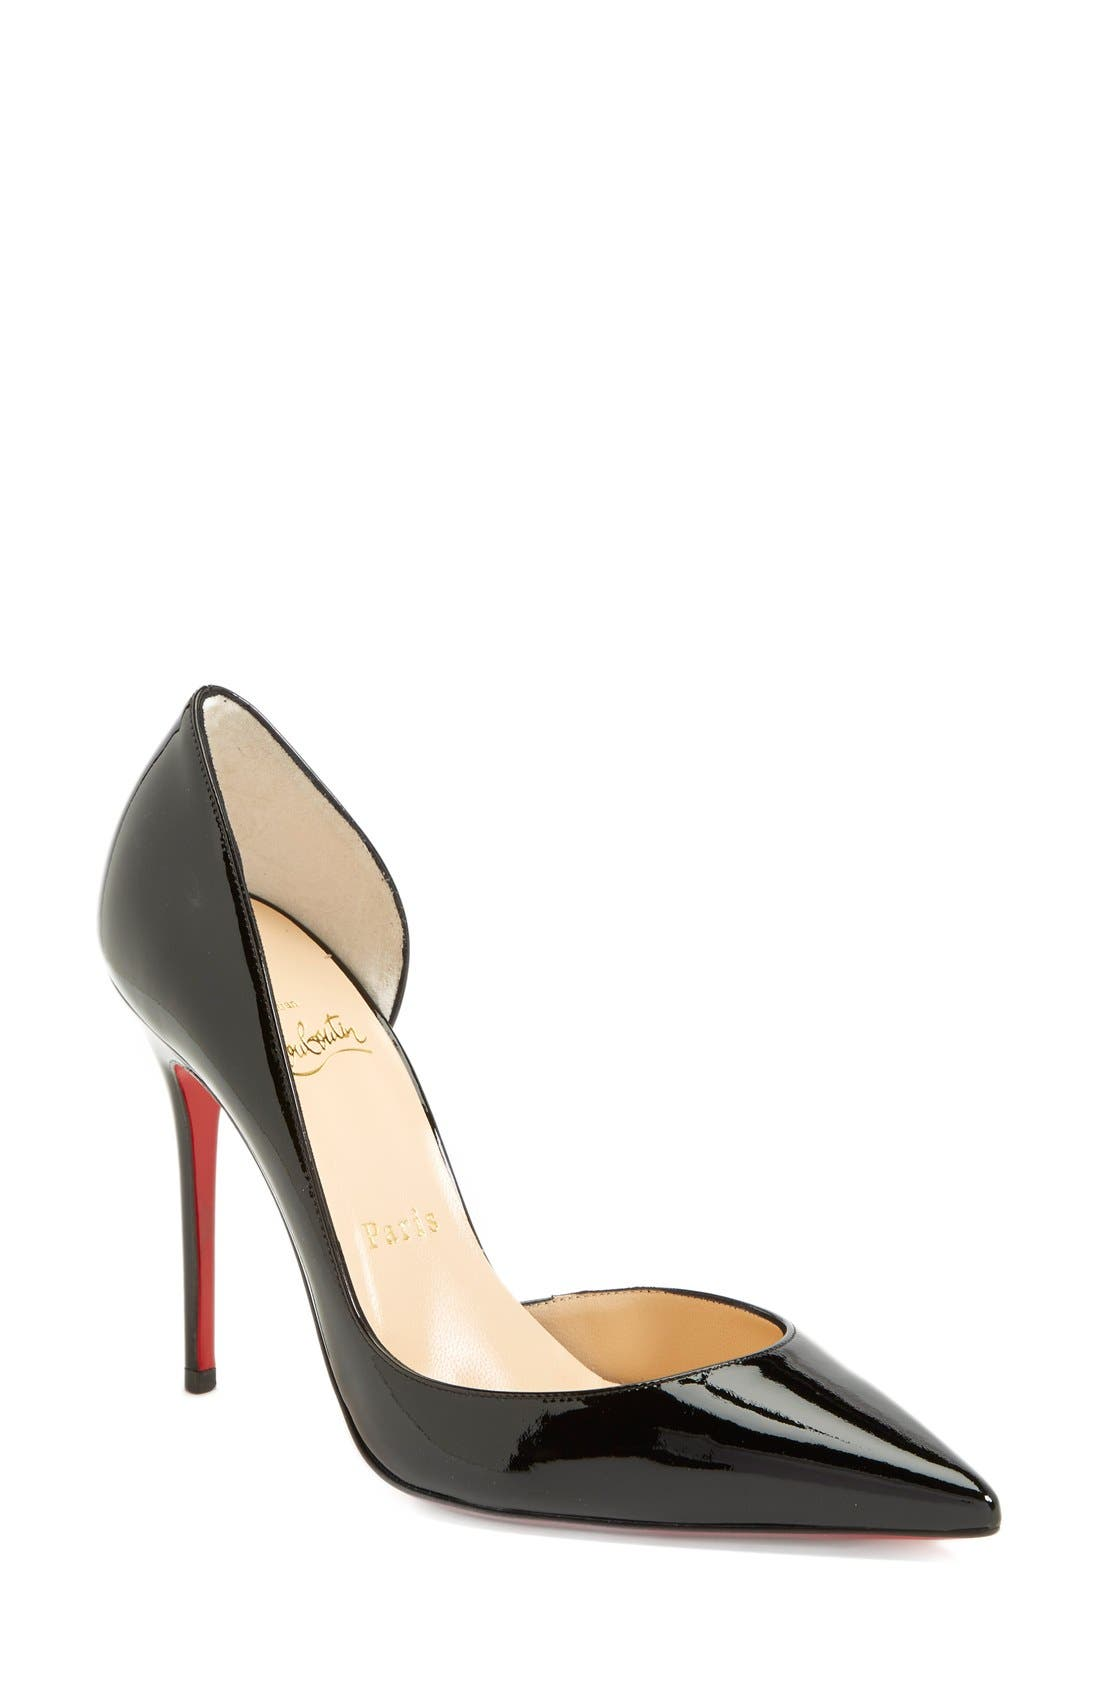 Alternate Image 1 Selected - Christian Louboutin 'Iriza' Pointy Toe Half d'Orsay Pump (Women)